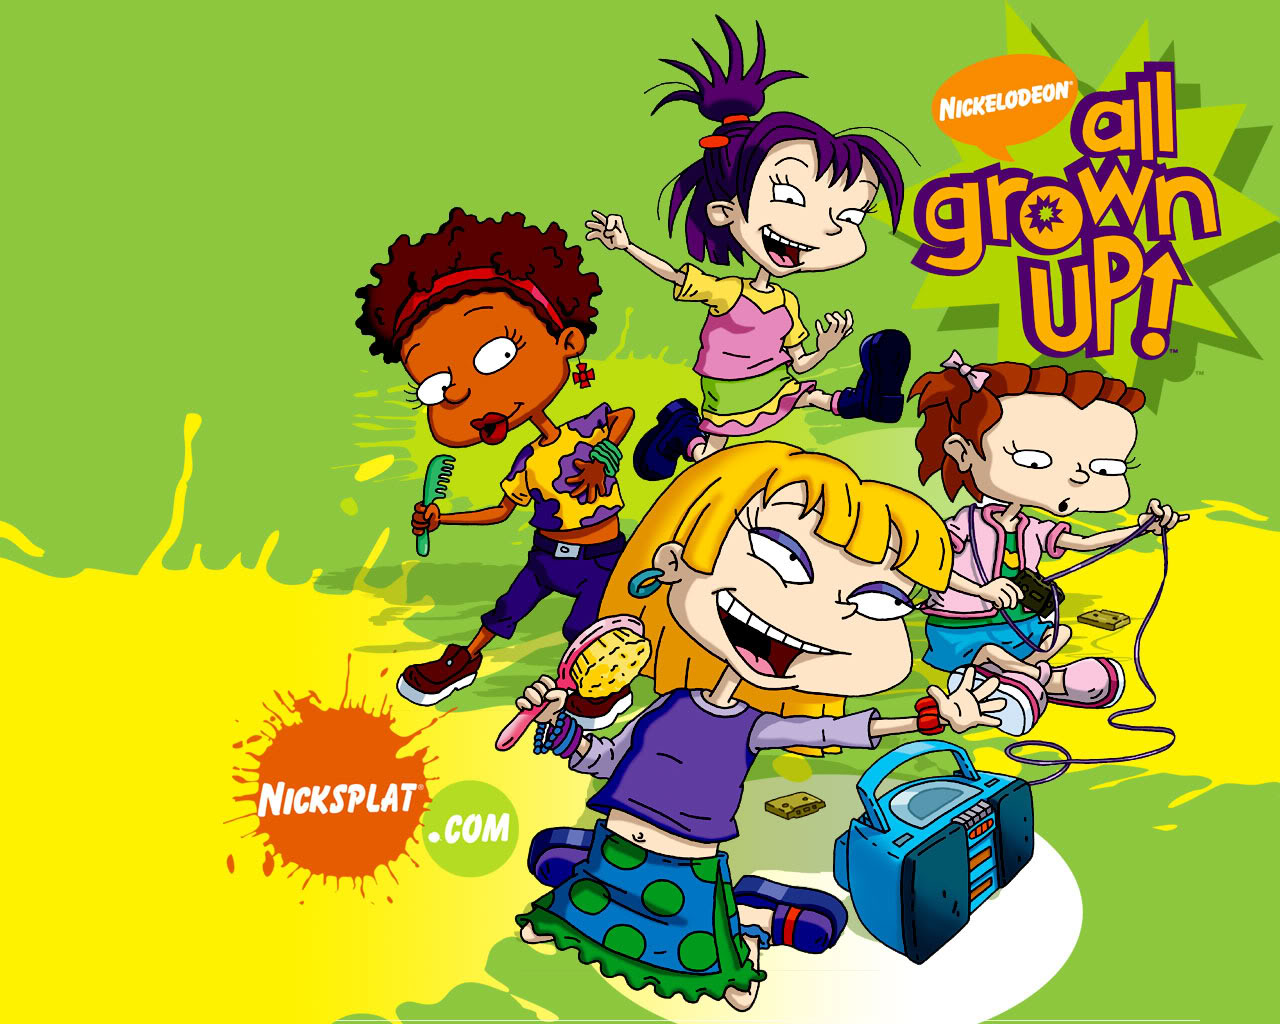 Image All Grown Up Girls Wallpaper Jpg Nickelodeon